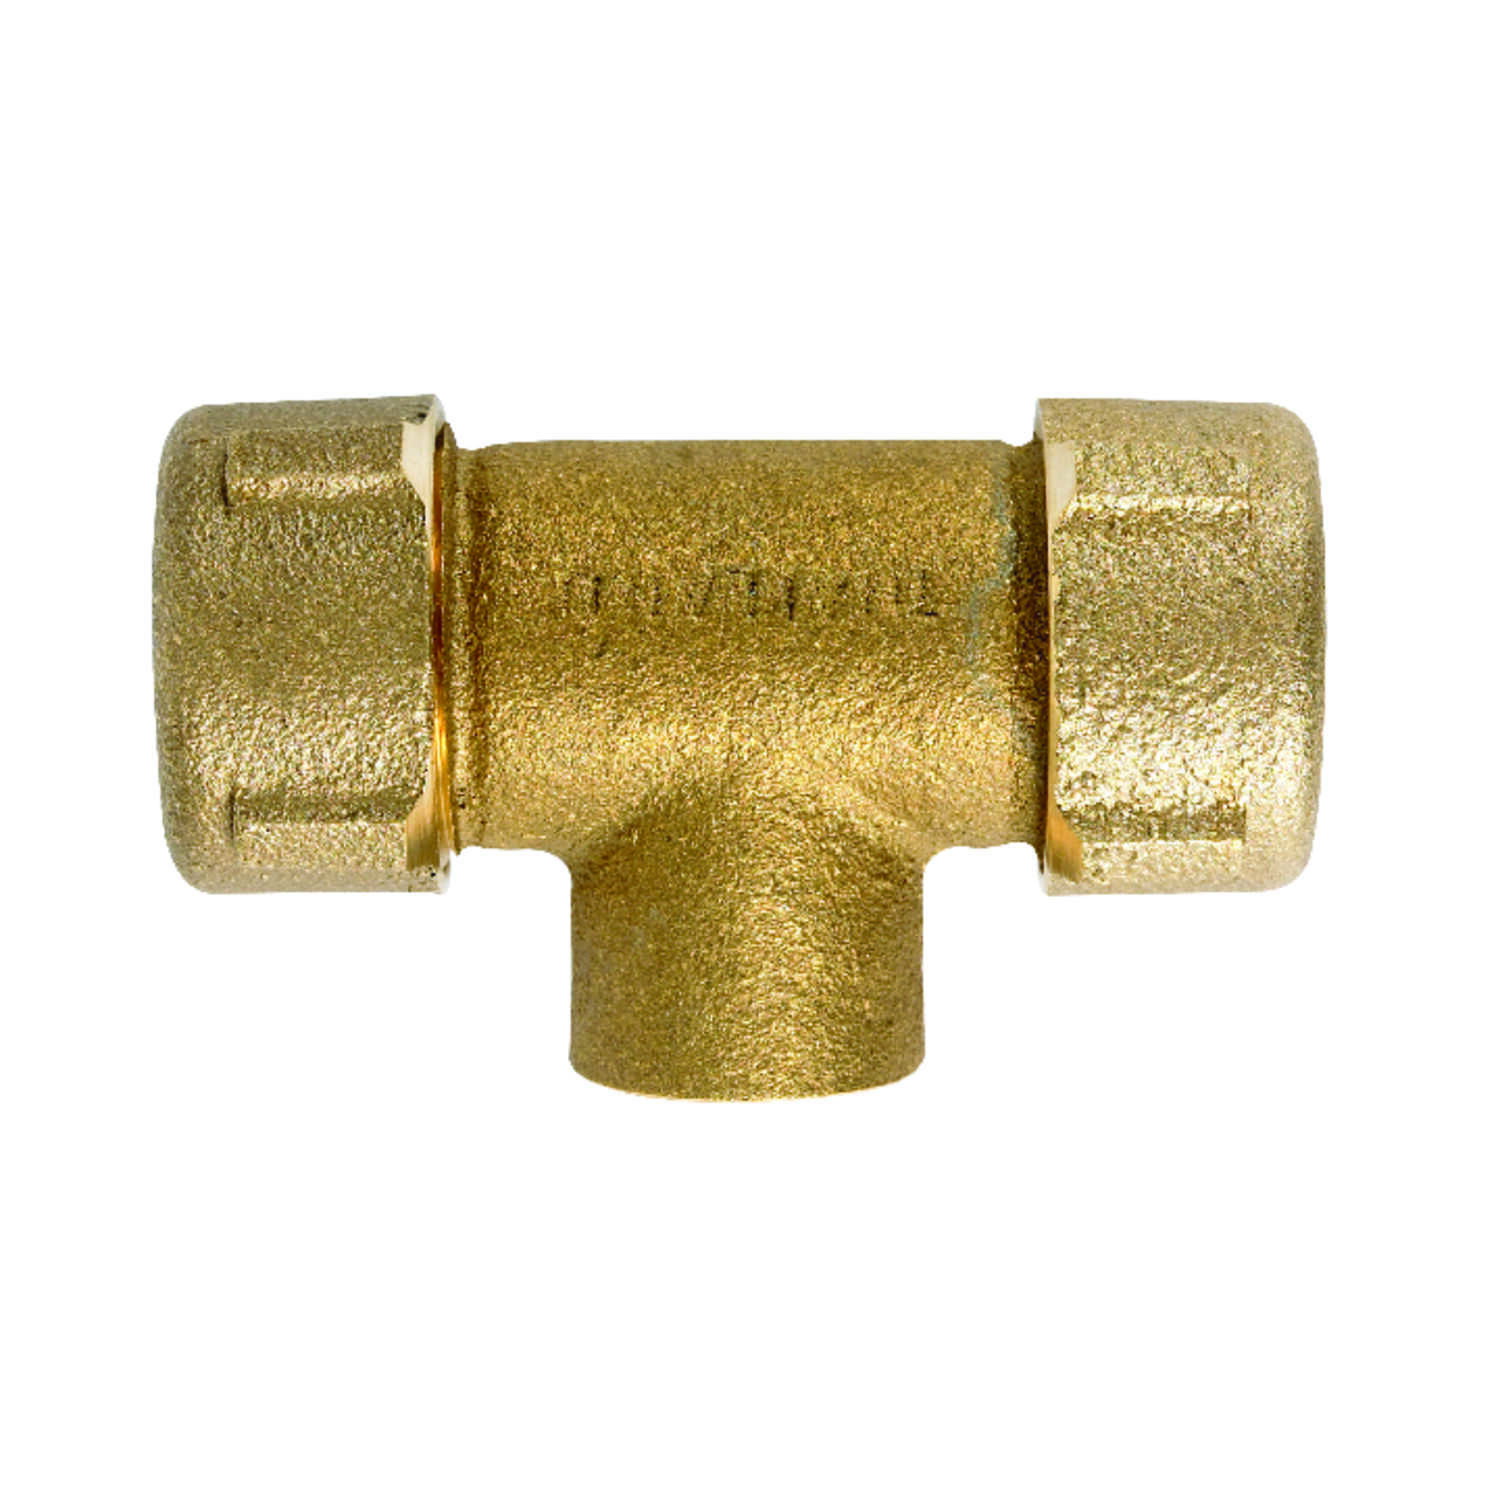 Mueller  1/2 in. FPT   x 3/4 in. Dia. Sweat  Galvanized  Brass  Tee